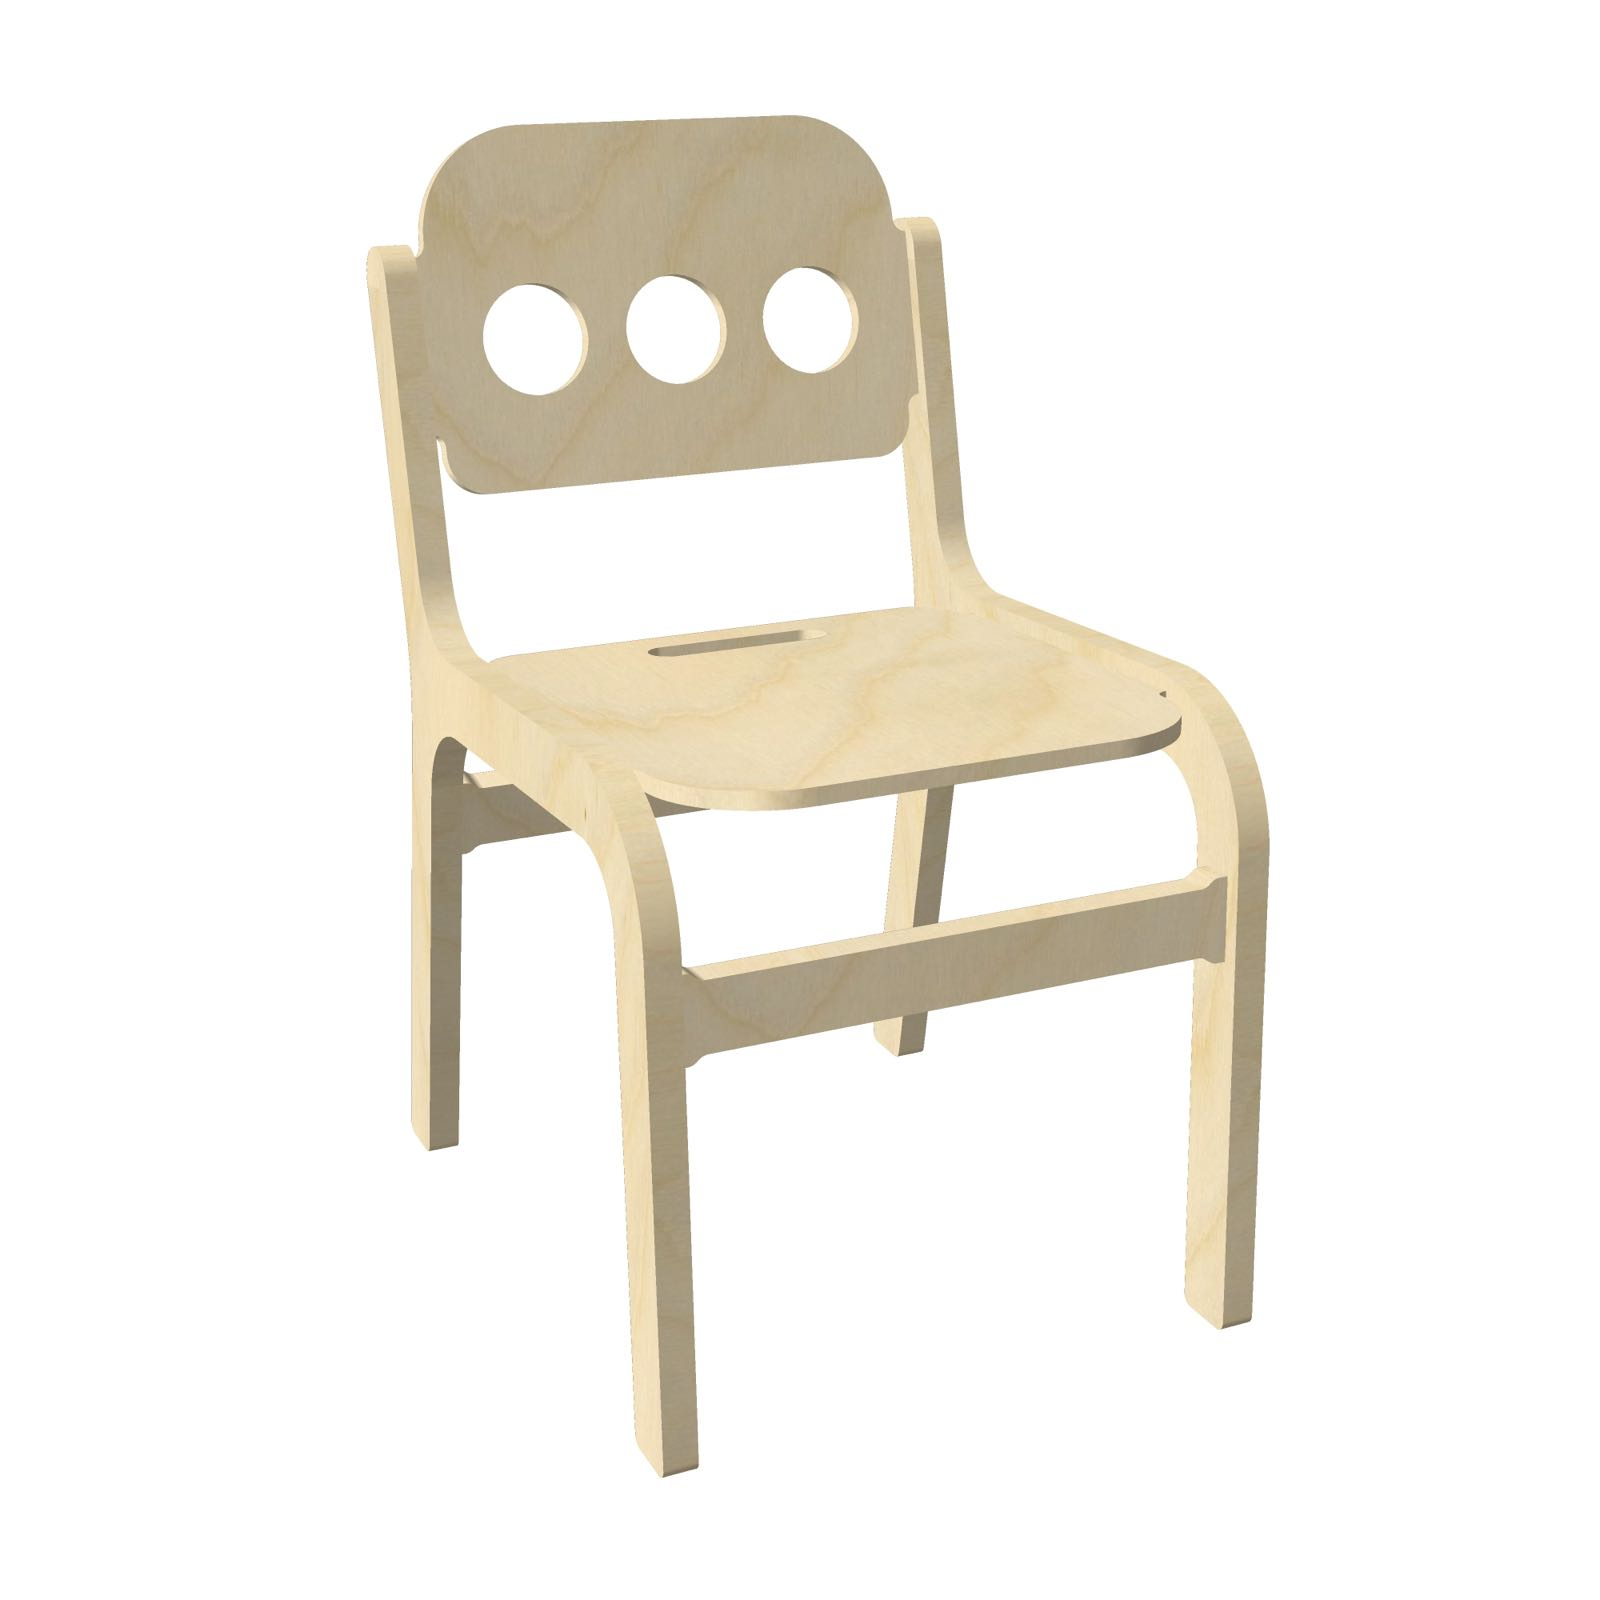 Chair Nashville Module Furniture